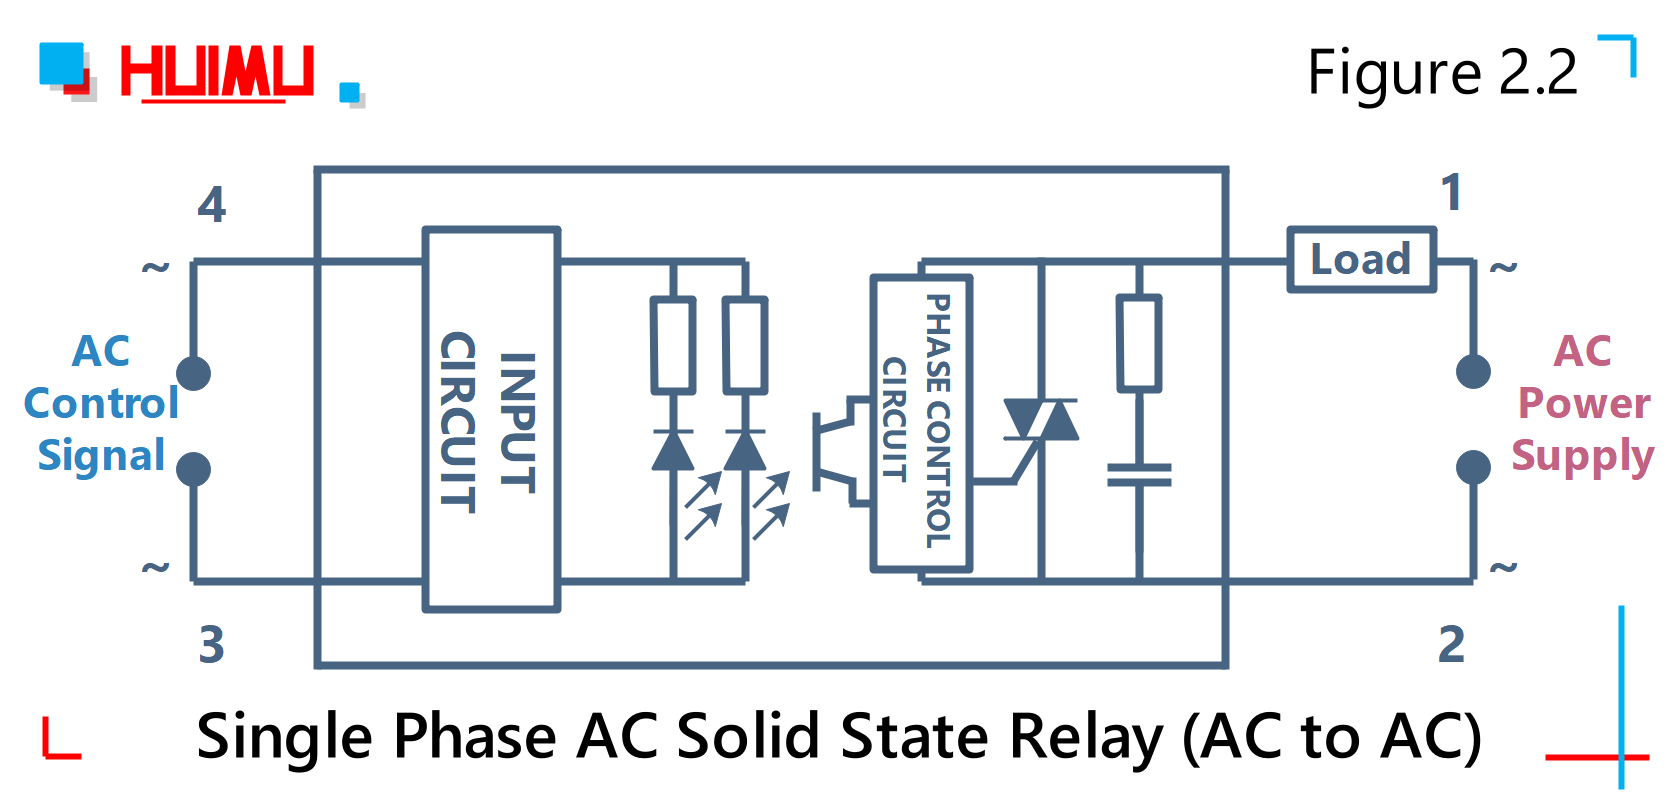 MGR mager solid state relay wiring diagram |HUIMULTD on